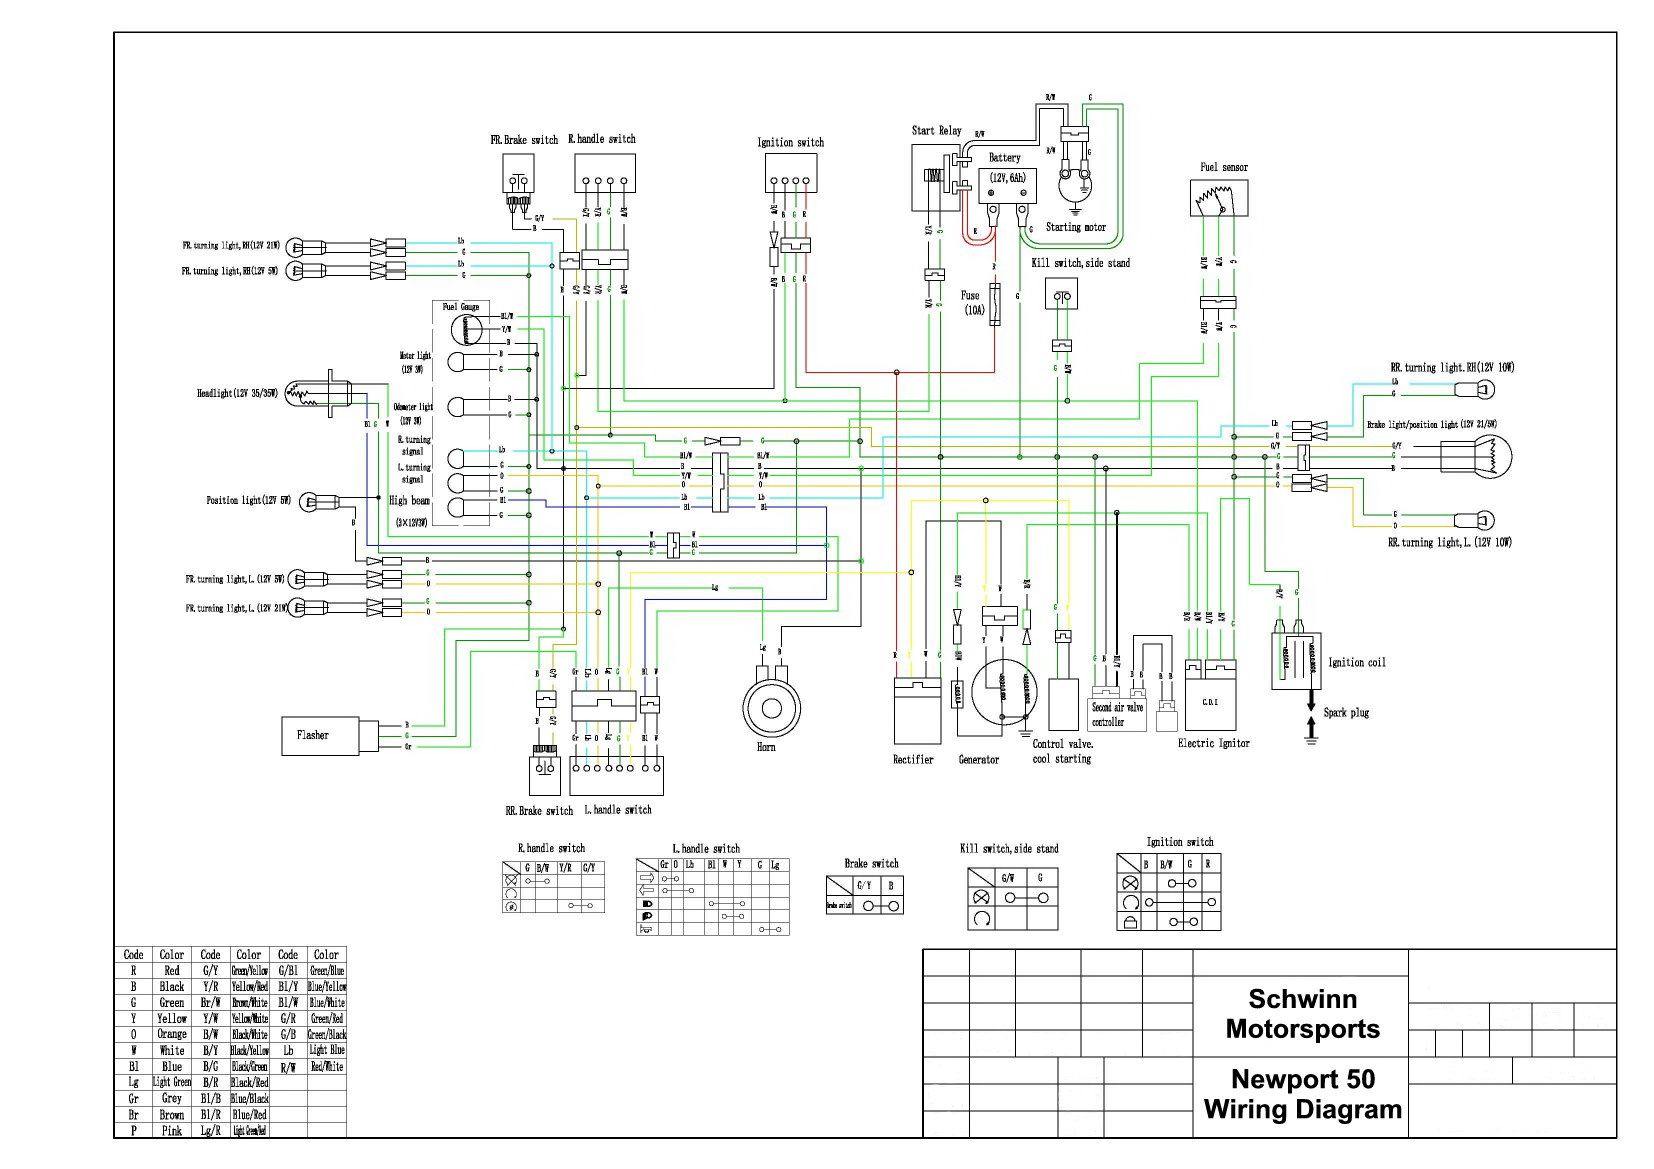 Wiring Diagram For Electric Scooter Http Bookingritzcarlton Info Wiring Diagram For Electric Scooter จ กรยาน